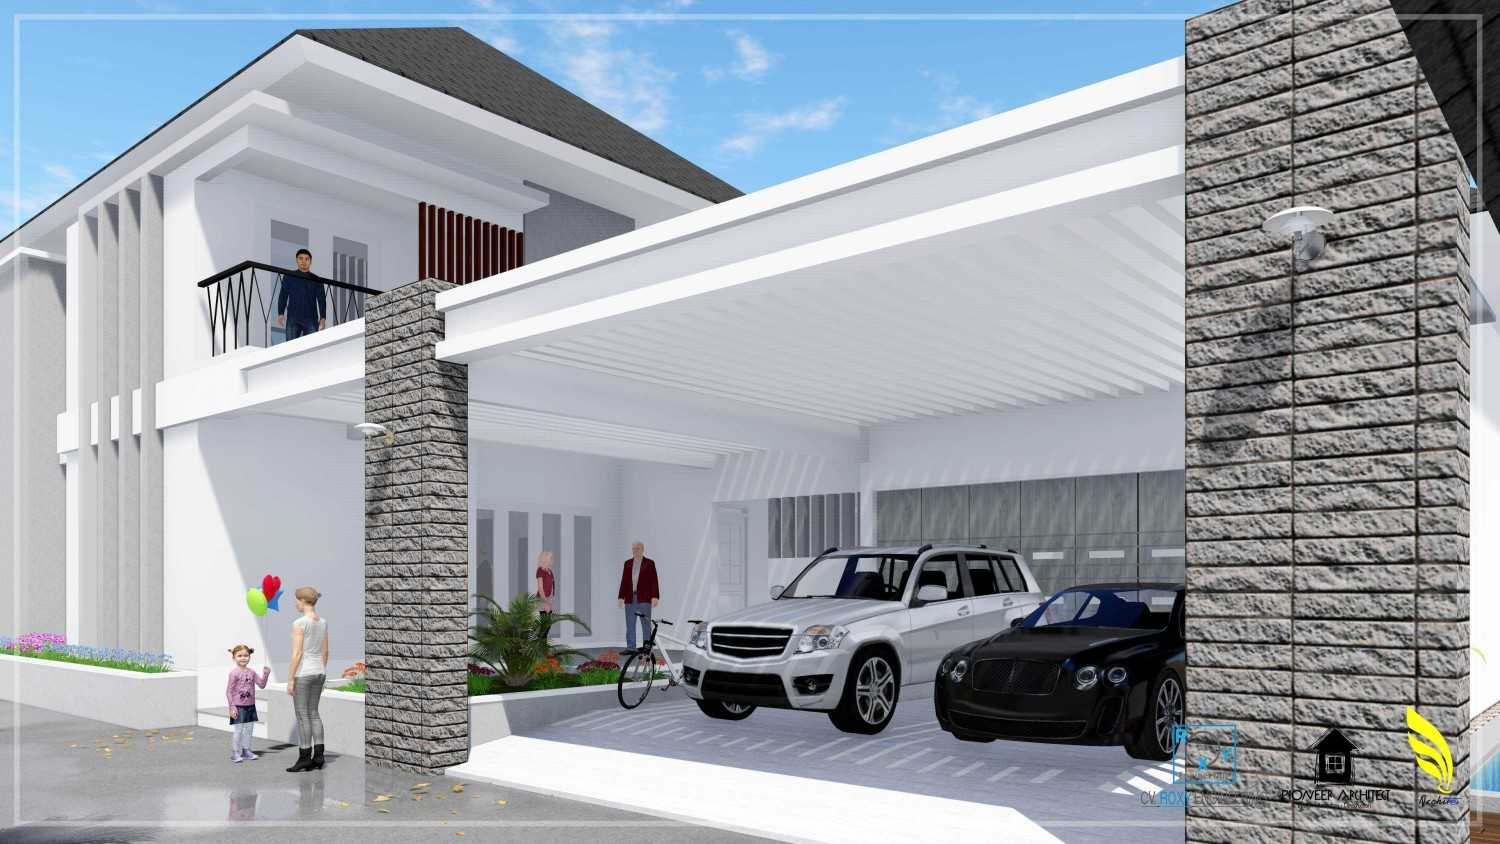 Pionner Architect R House Banda Aceh, Kota Banda Aceh, Aceh, Indonesia Banda Aceh, Kota Banda Aceh, Aceh, Indonesia Parking Area  43253